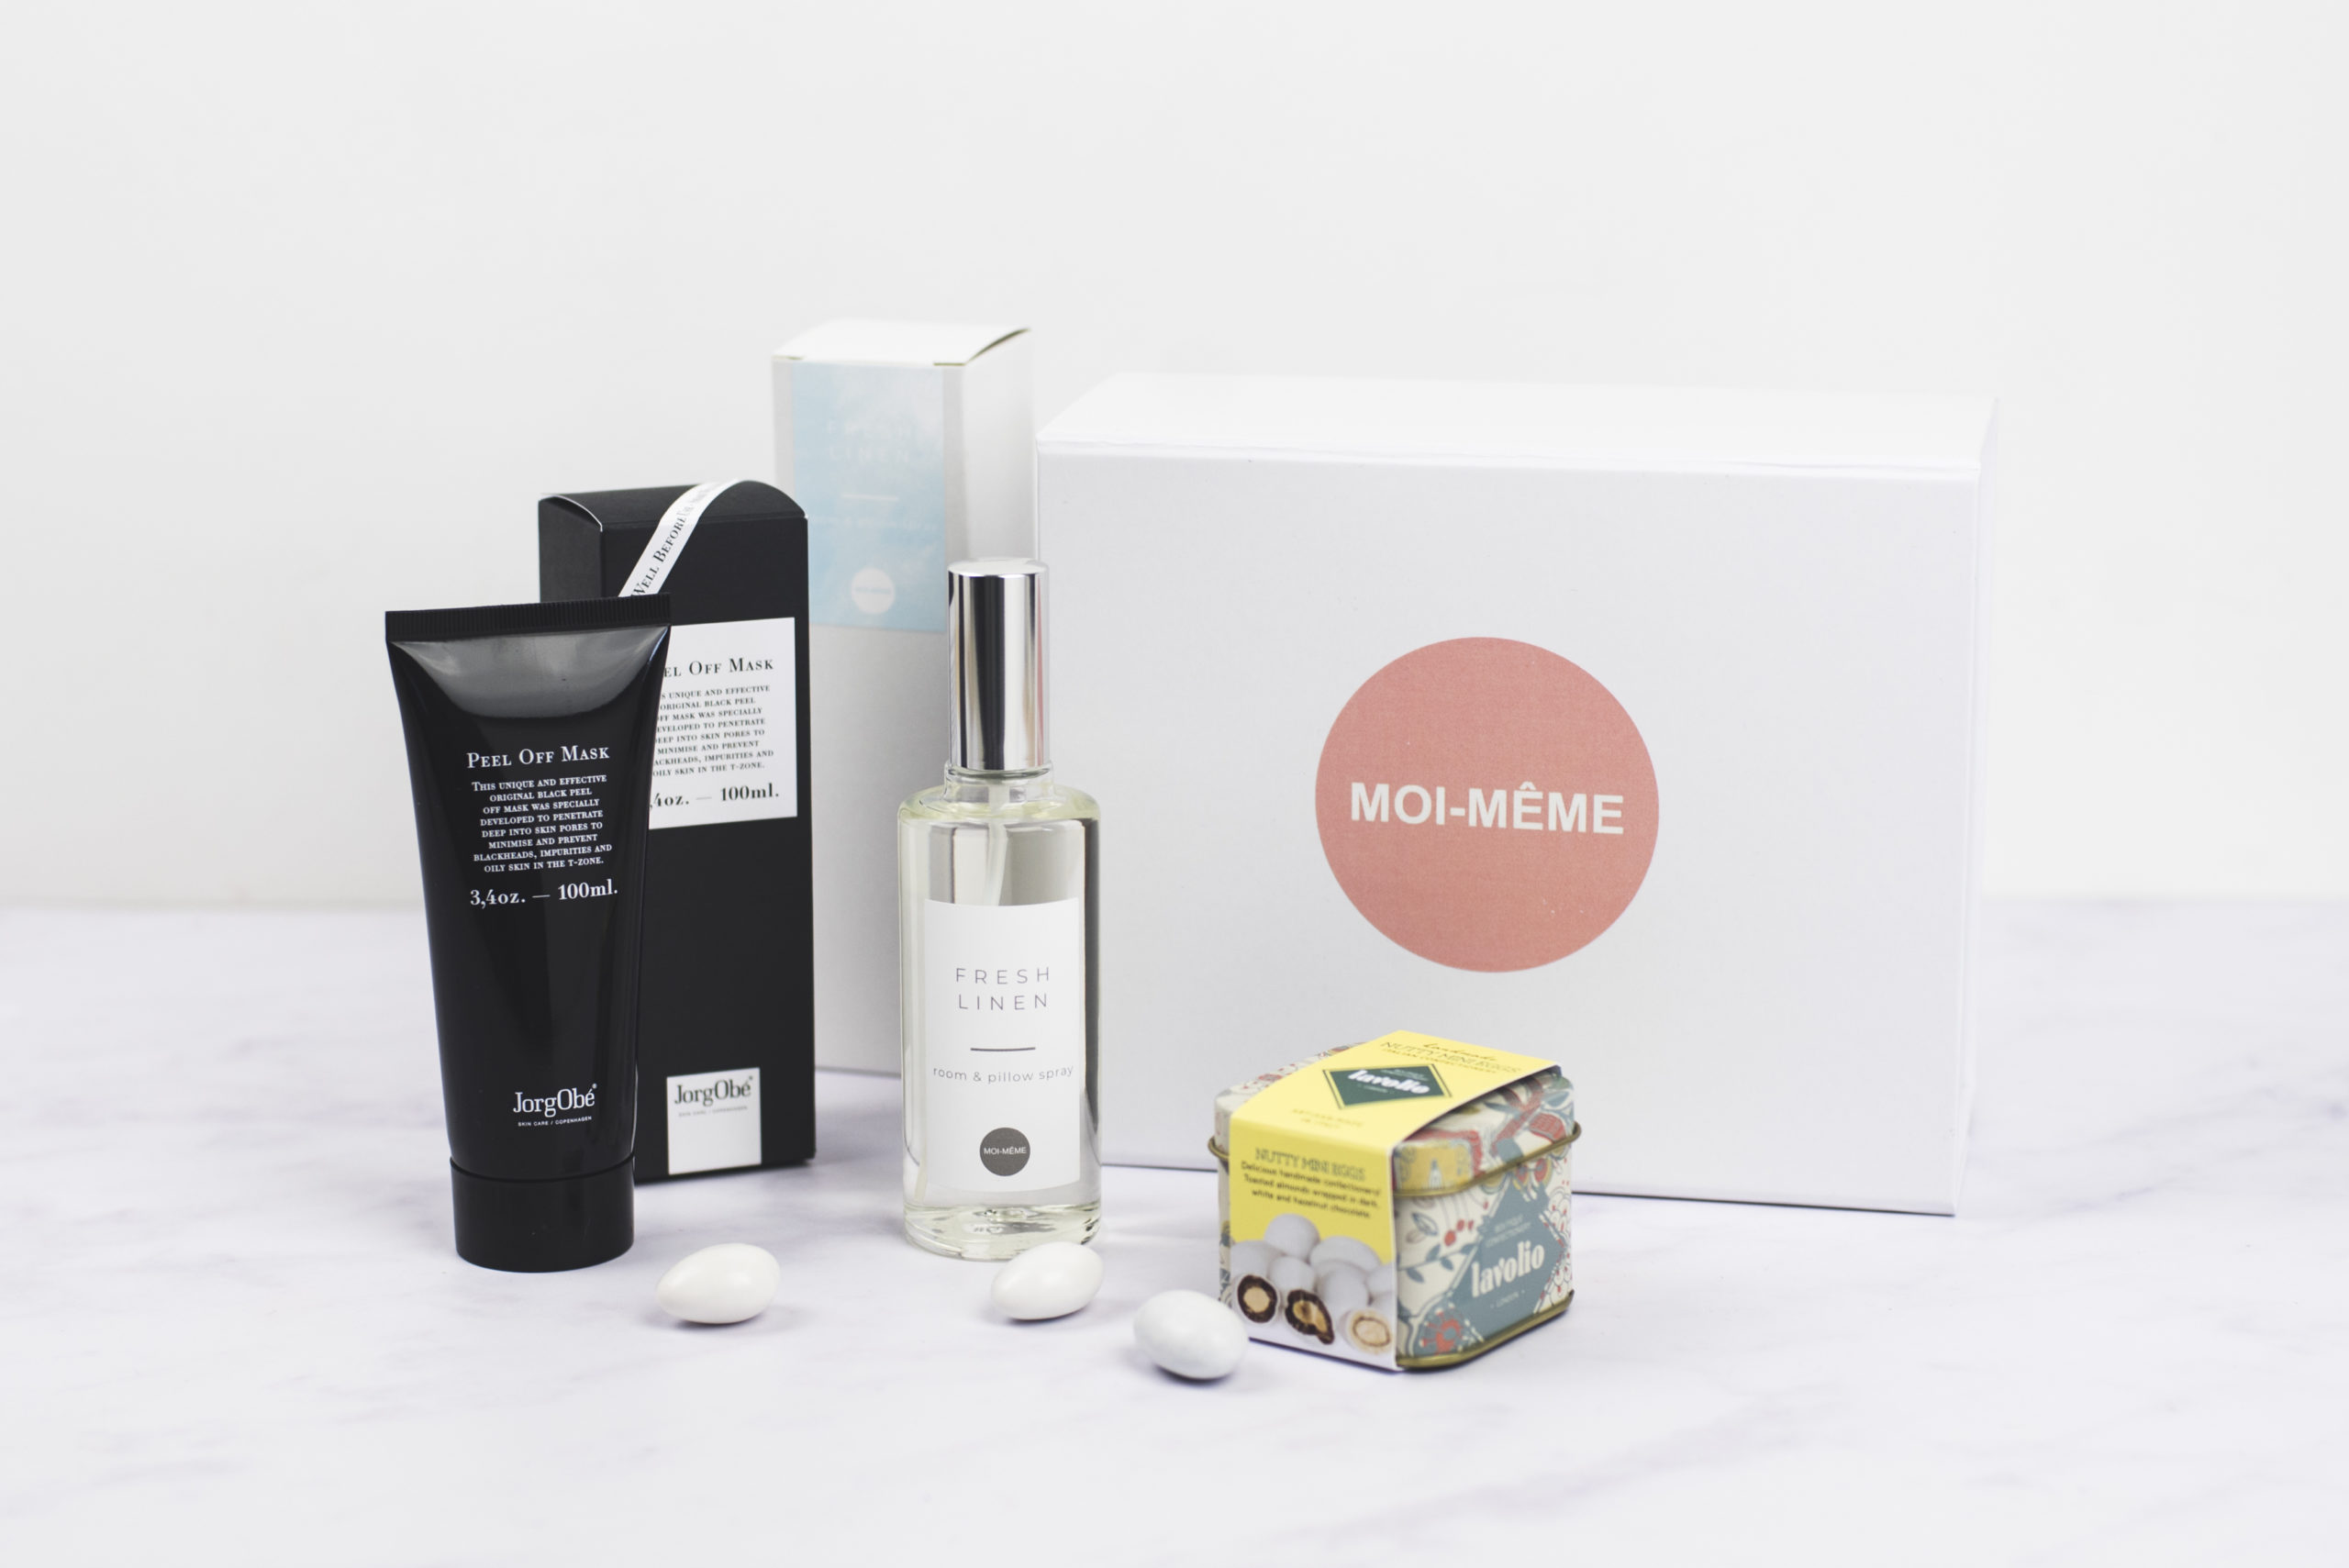 The Spring Clean Box